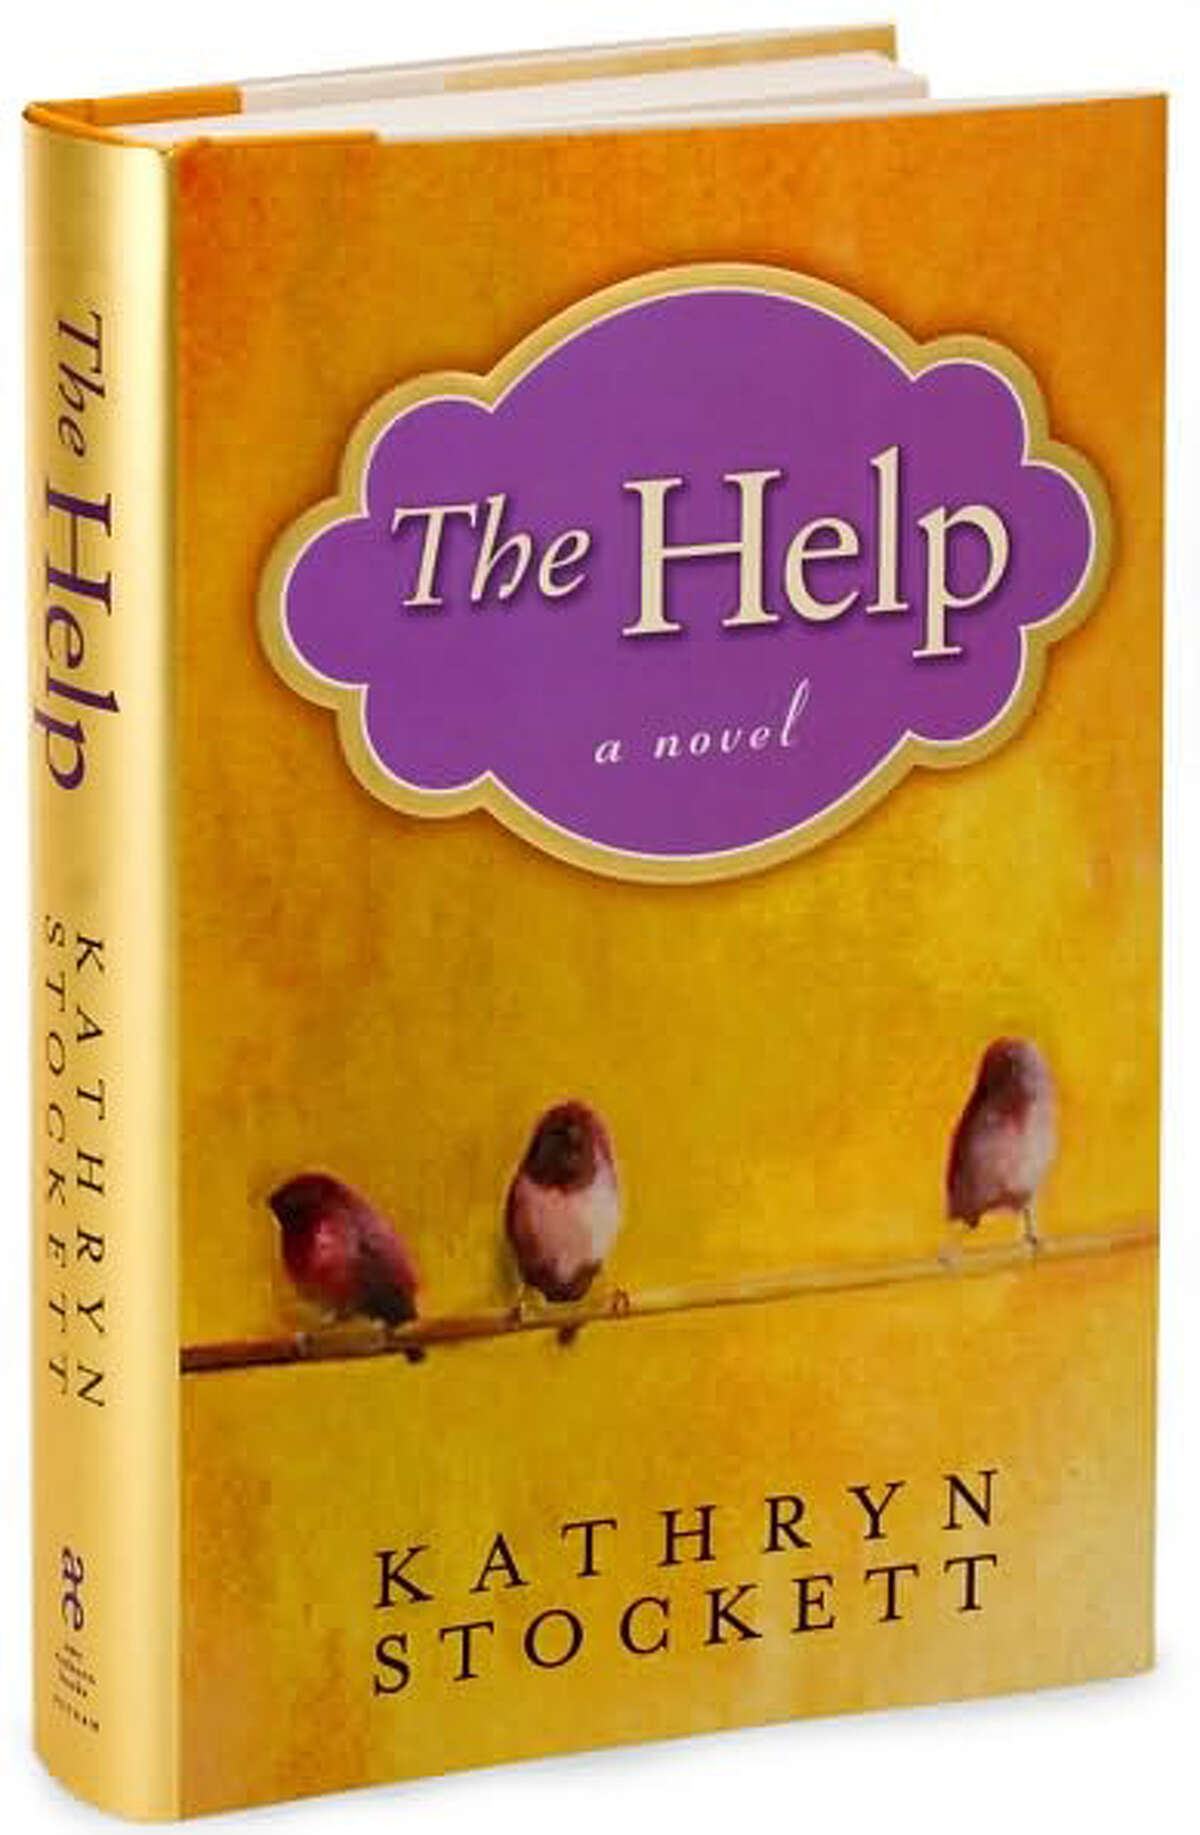 BOOK JACKET - cover image of book, The Help, by Kathryn Stockett.